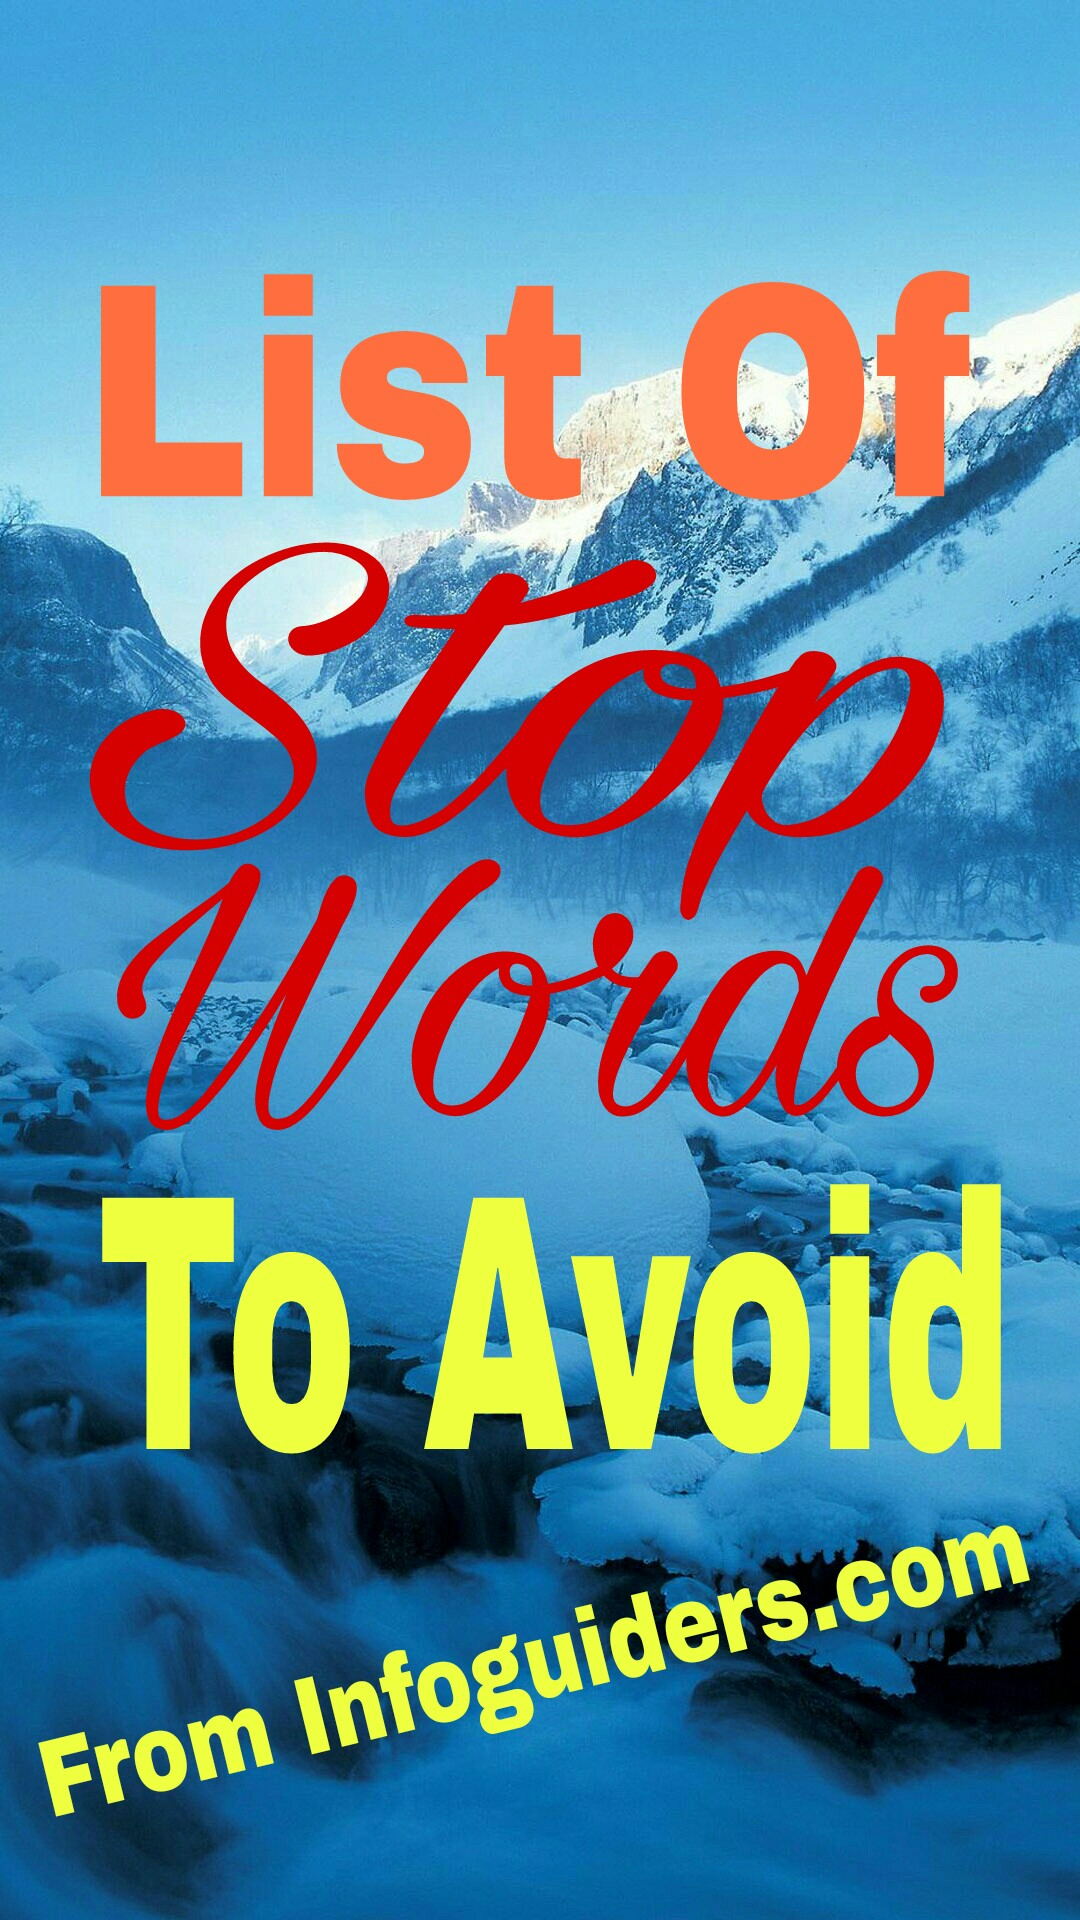 Stop word